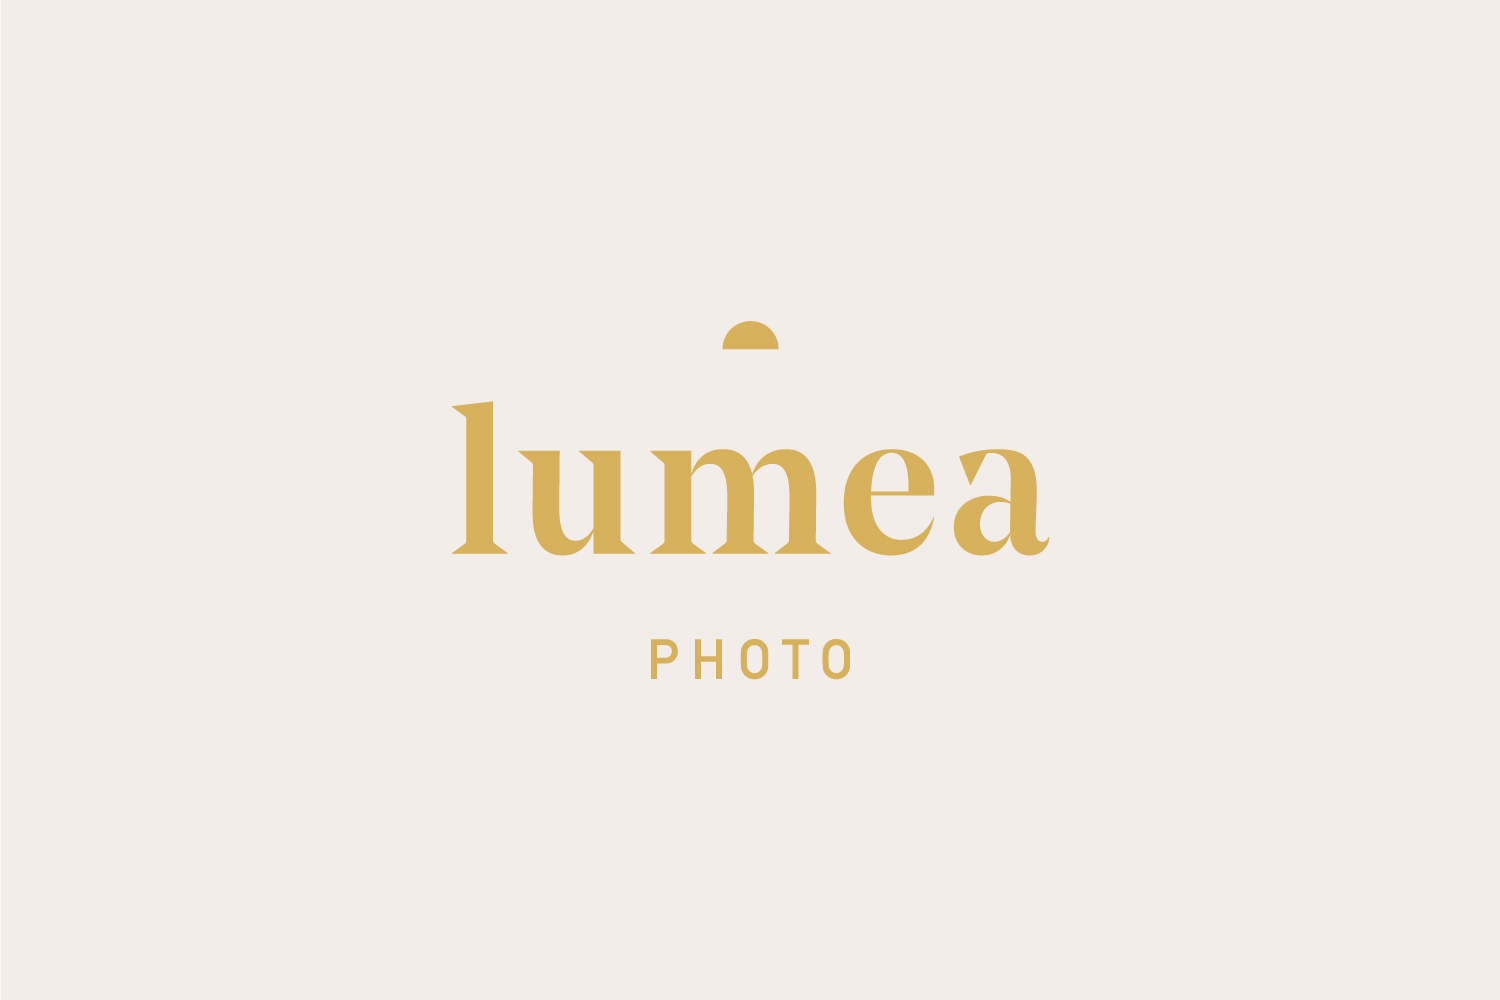 Lumea Photo logo design by Now or Never Design